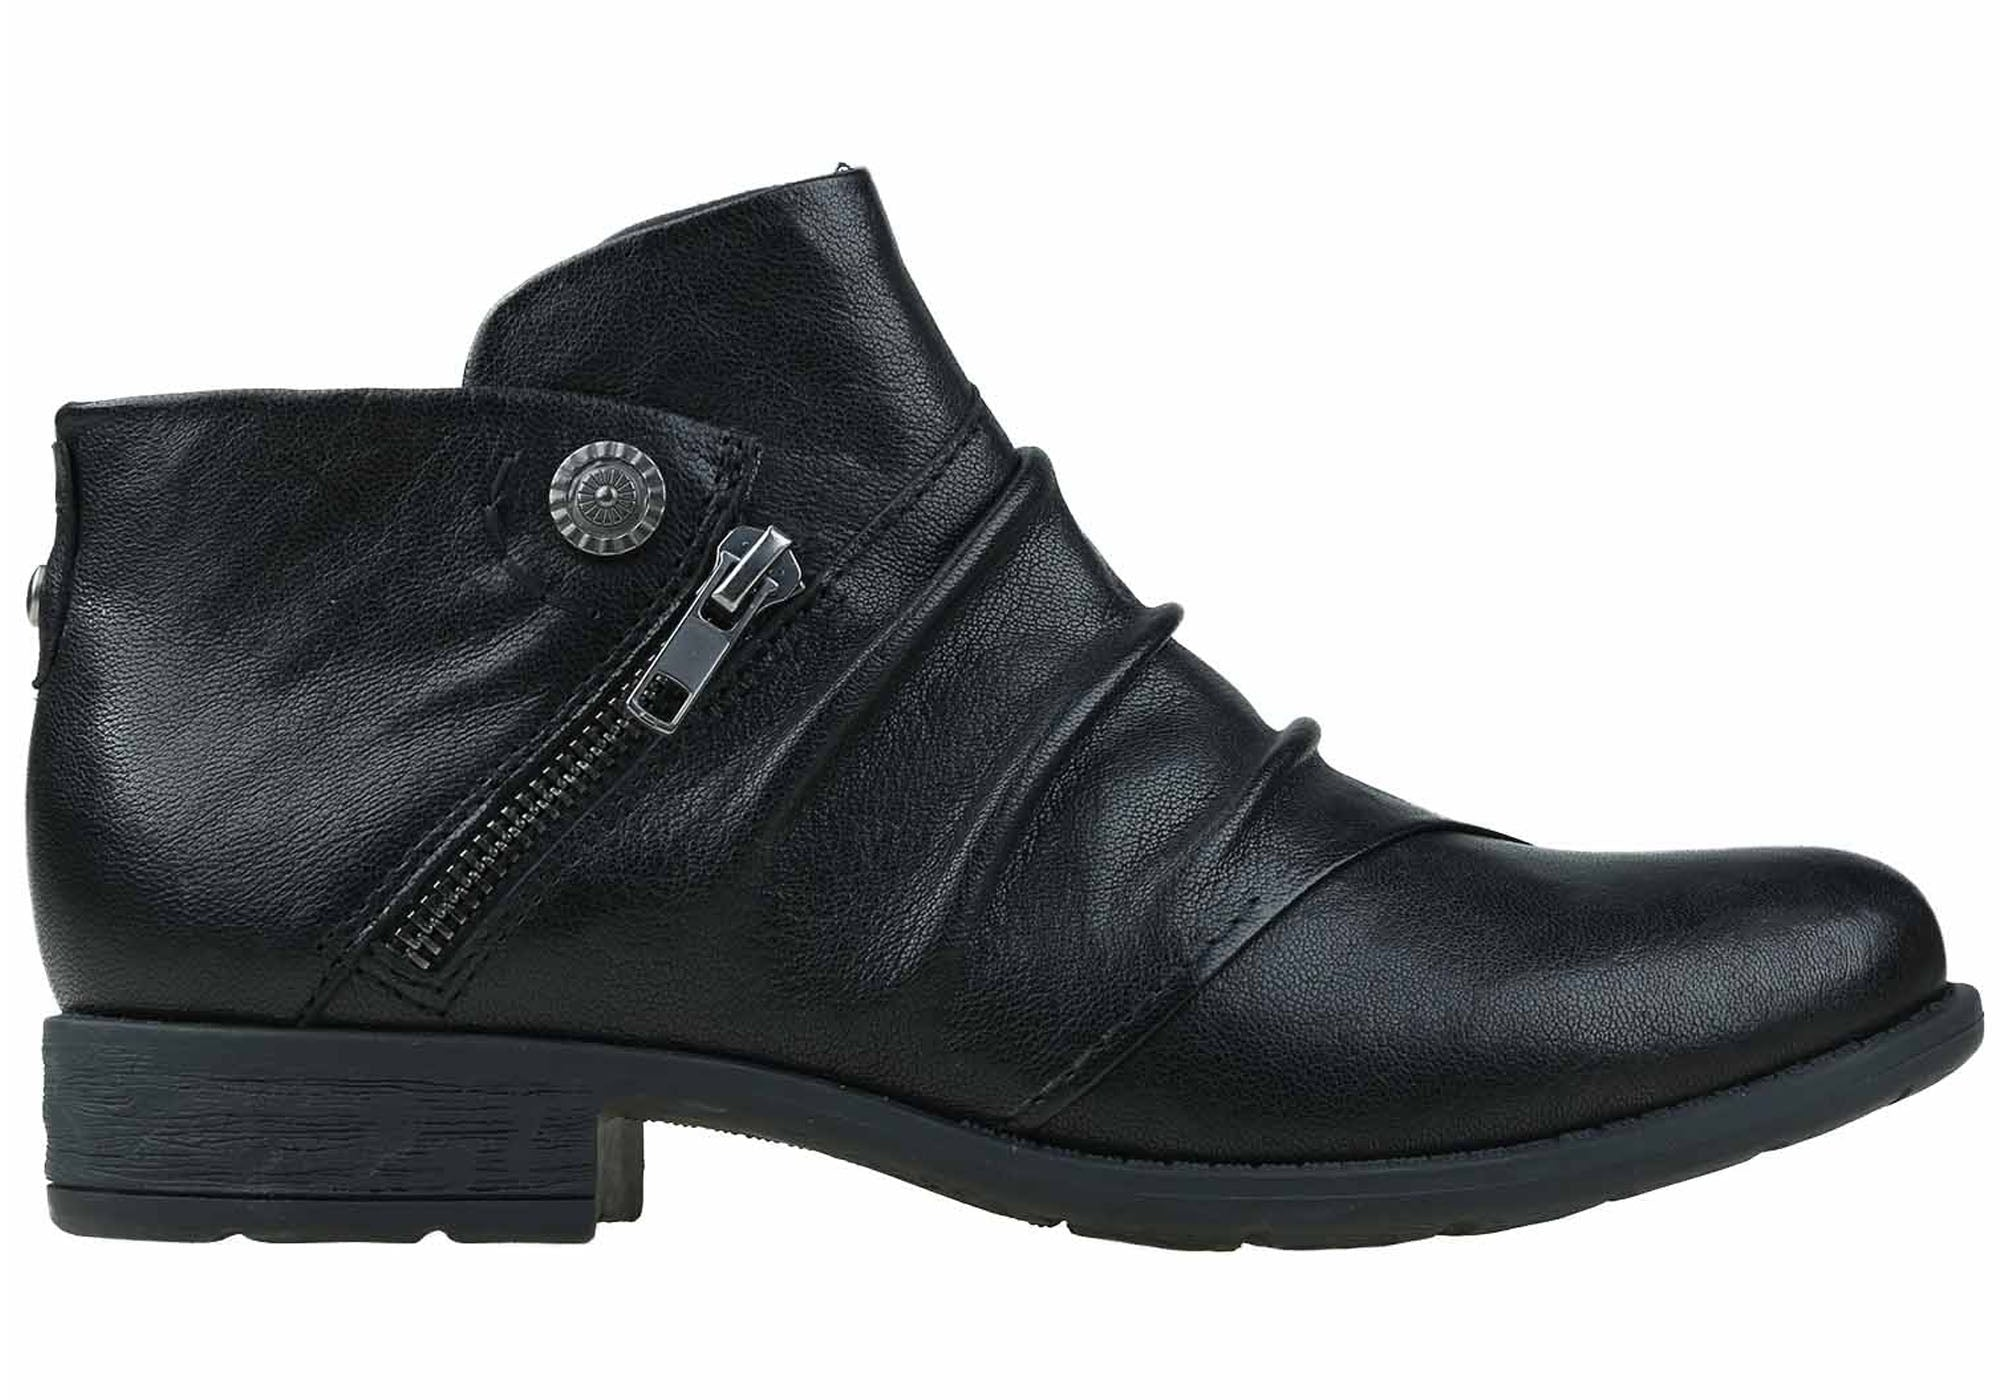 3ab6e5cb14b Earth Ronan Womens Comfortable Flat Soft Leather Ankle Boots